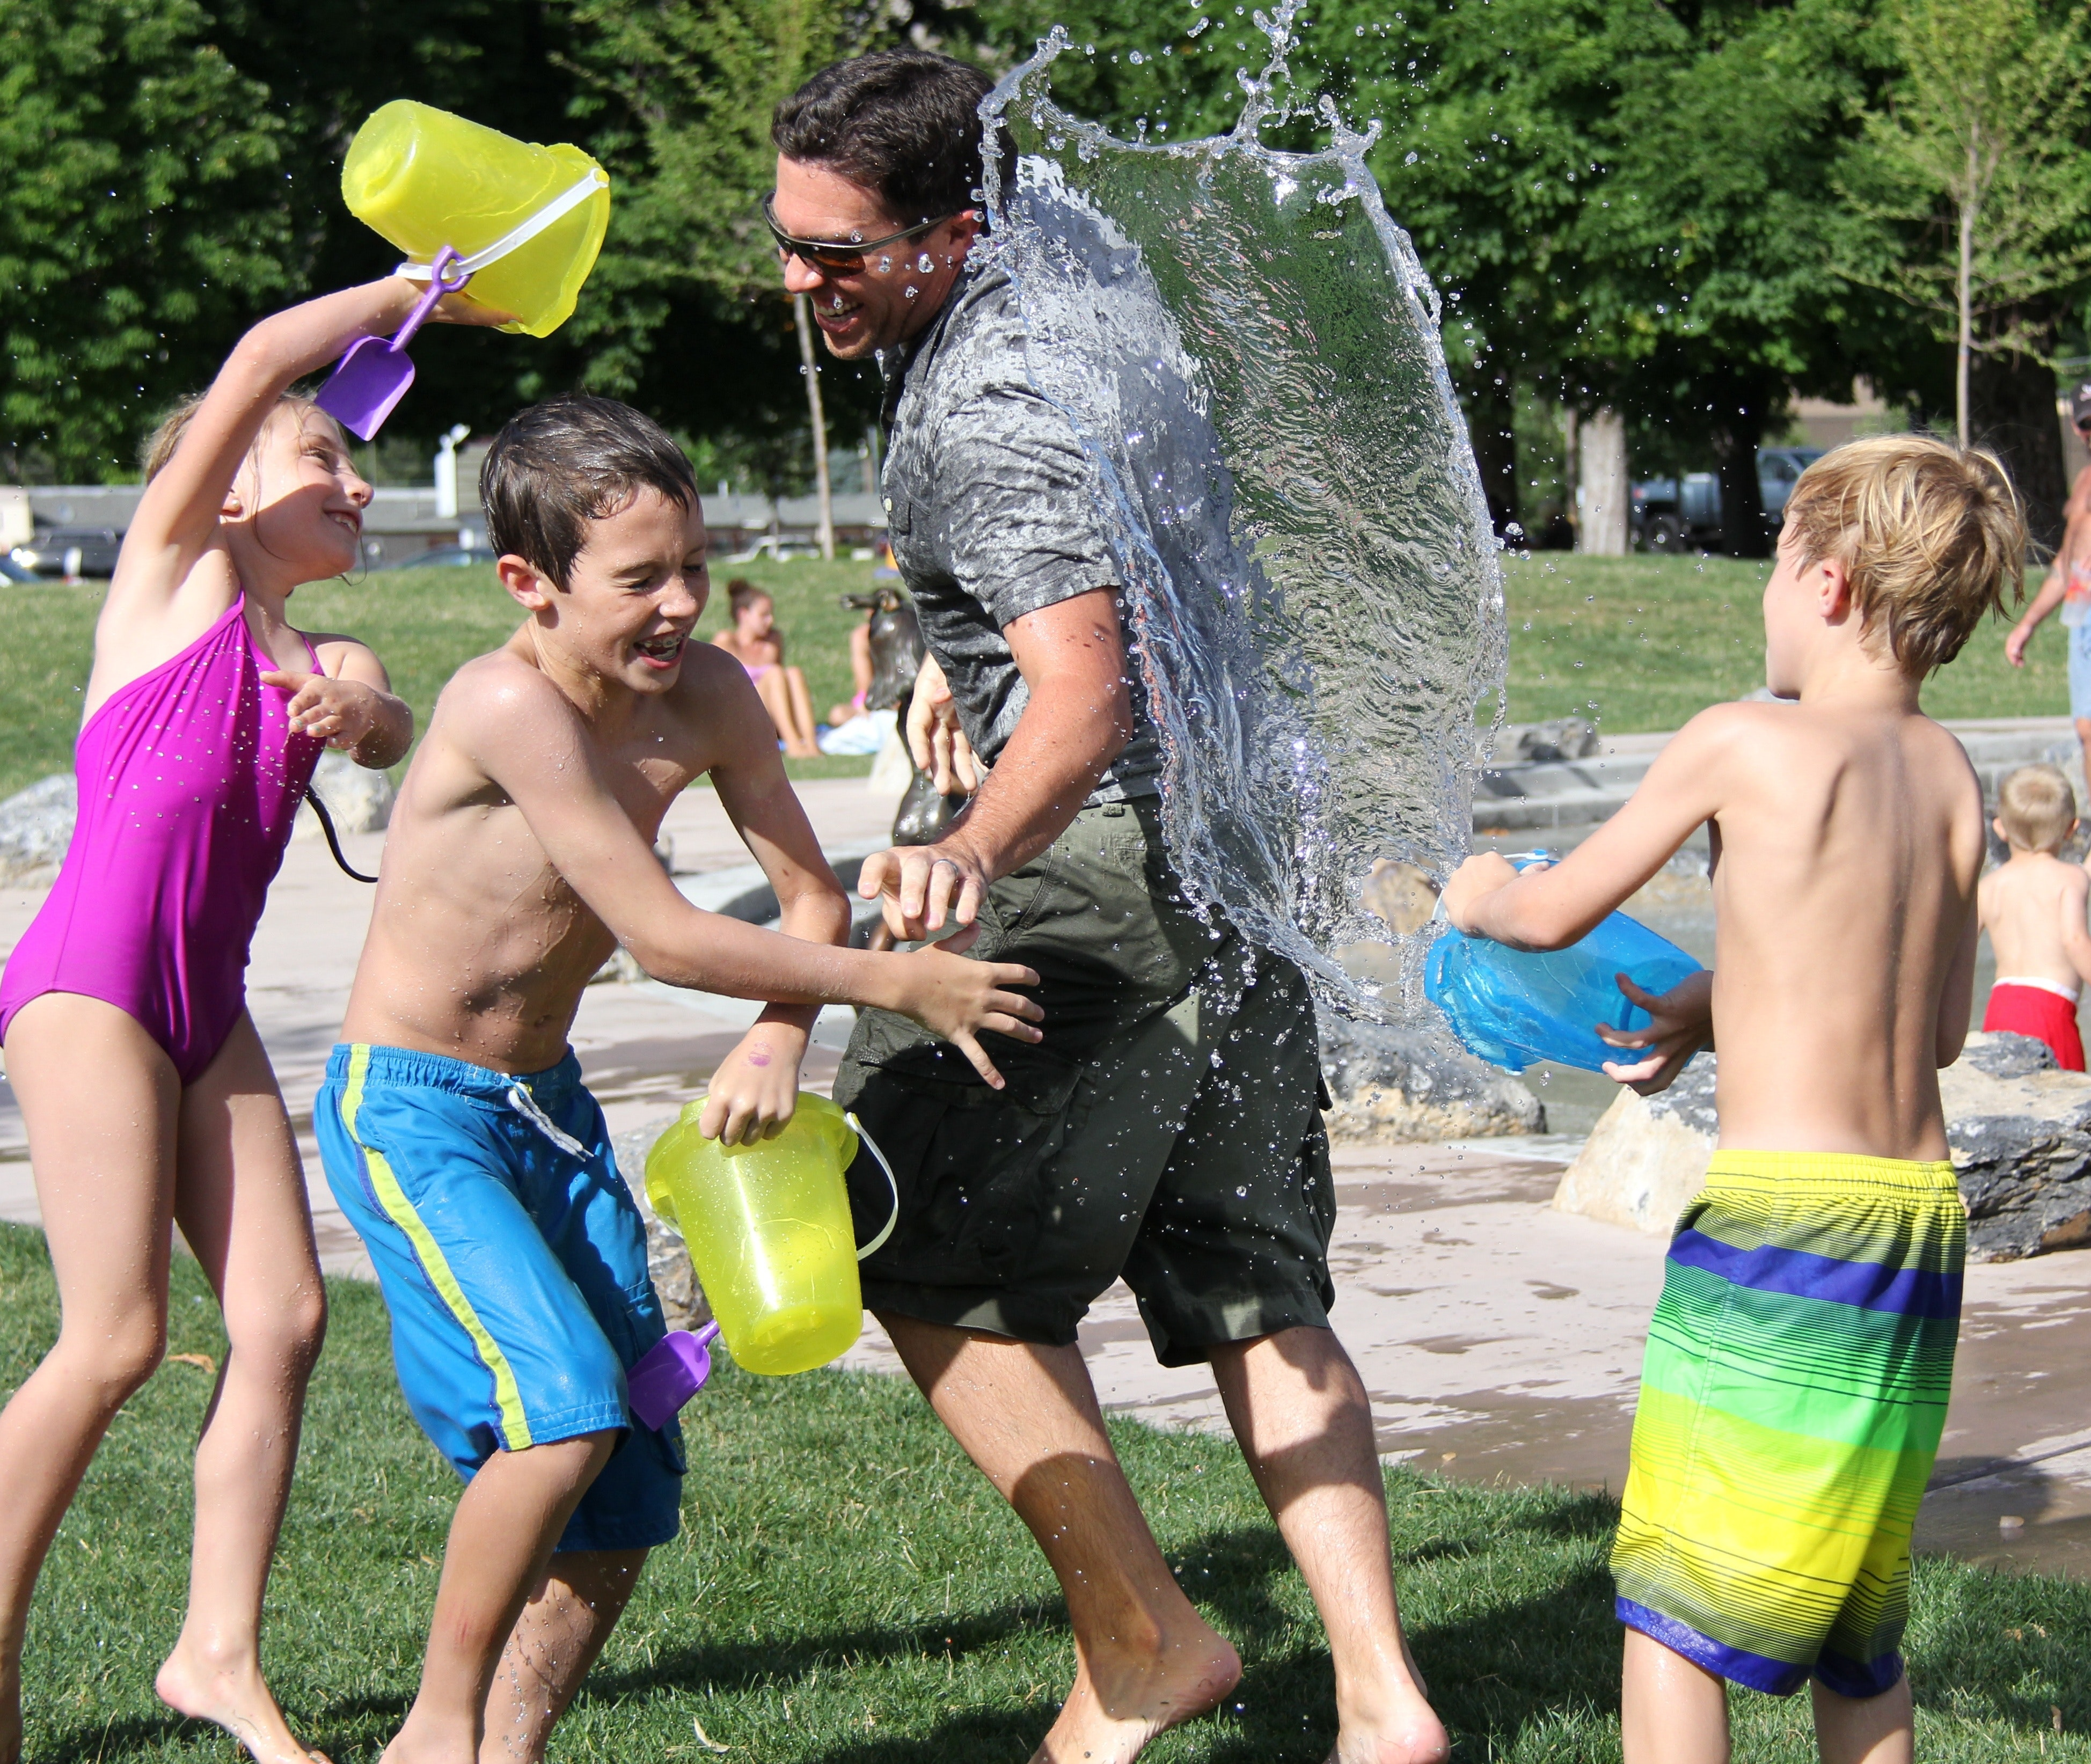 Children playing outside in water with adult staff